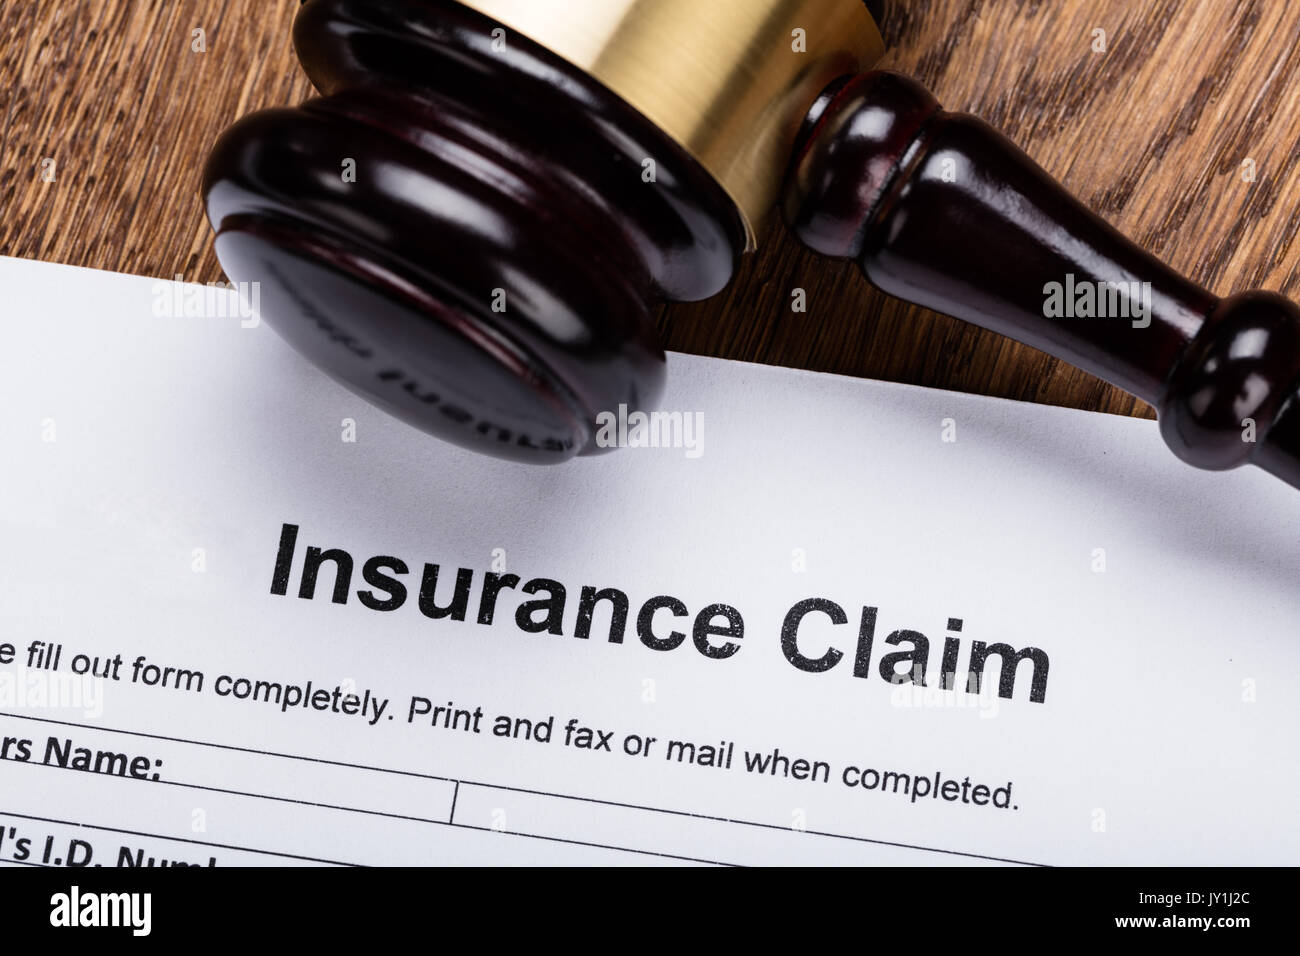 Close-up Of Wooden Gavel On Insurance Claim Form At Wooden Desk - Stock Image